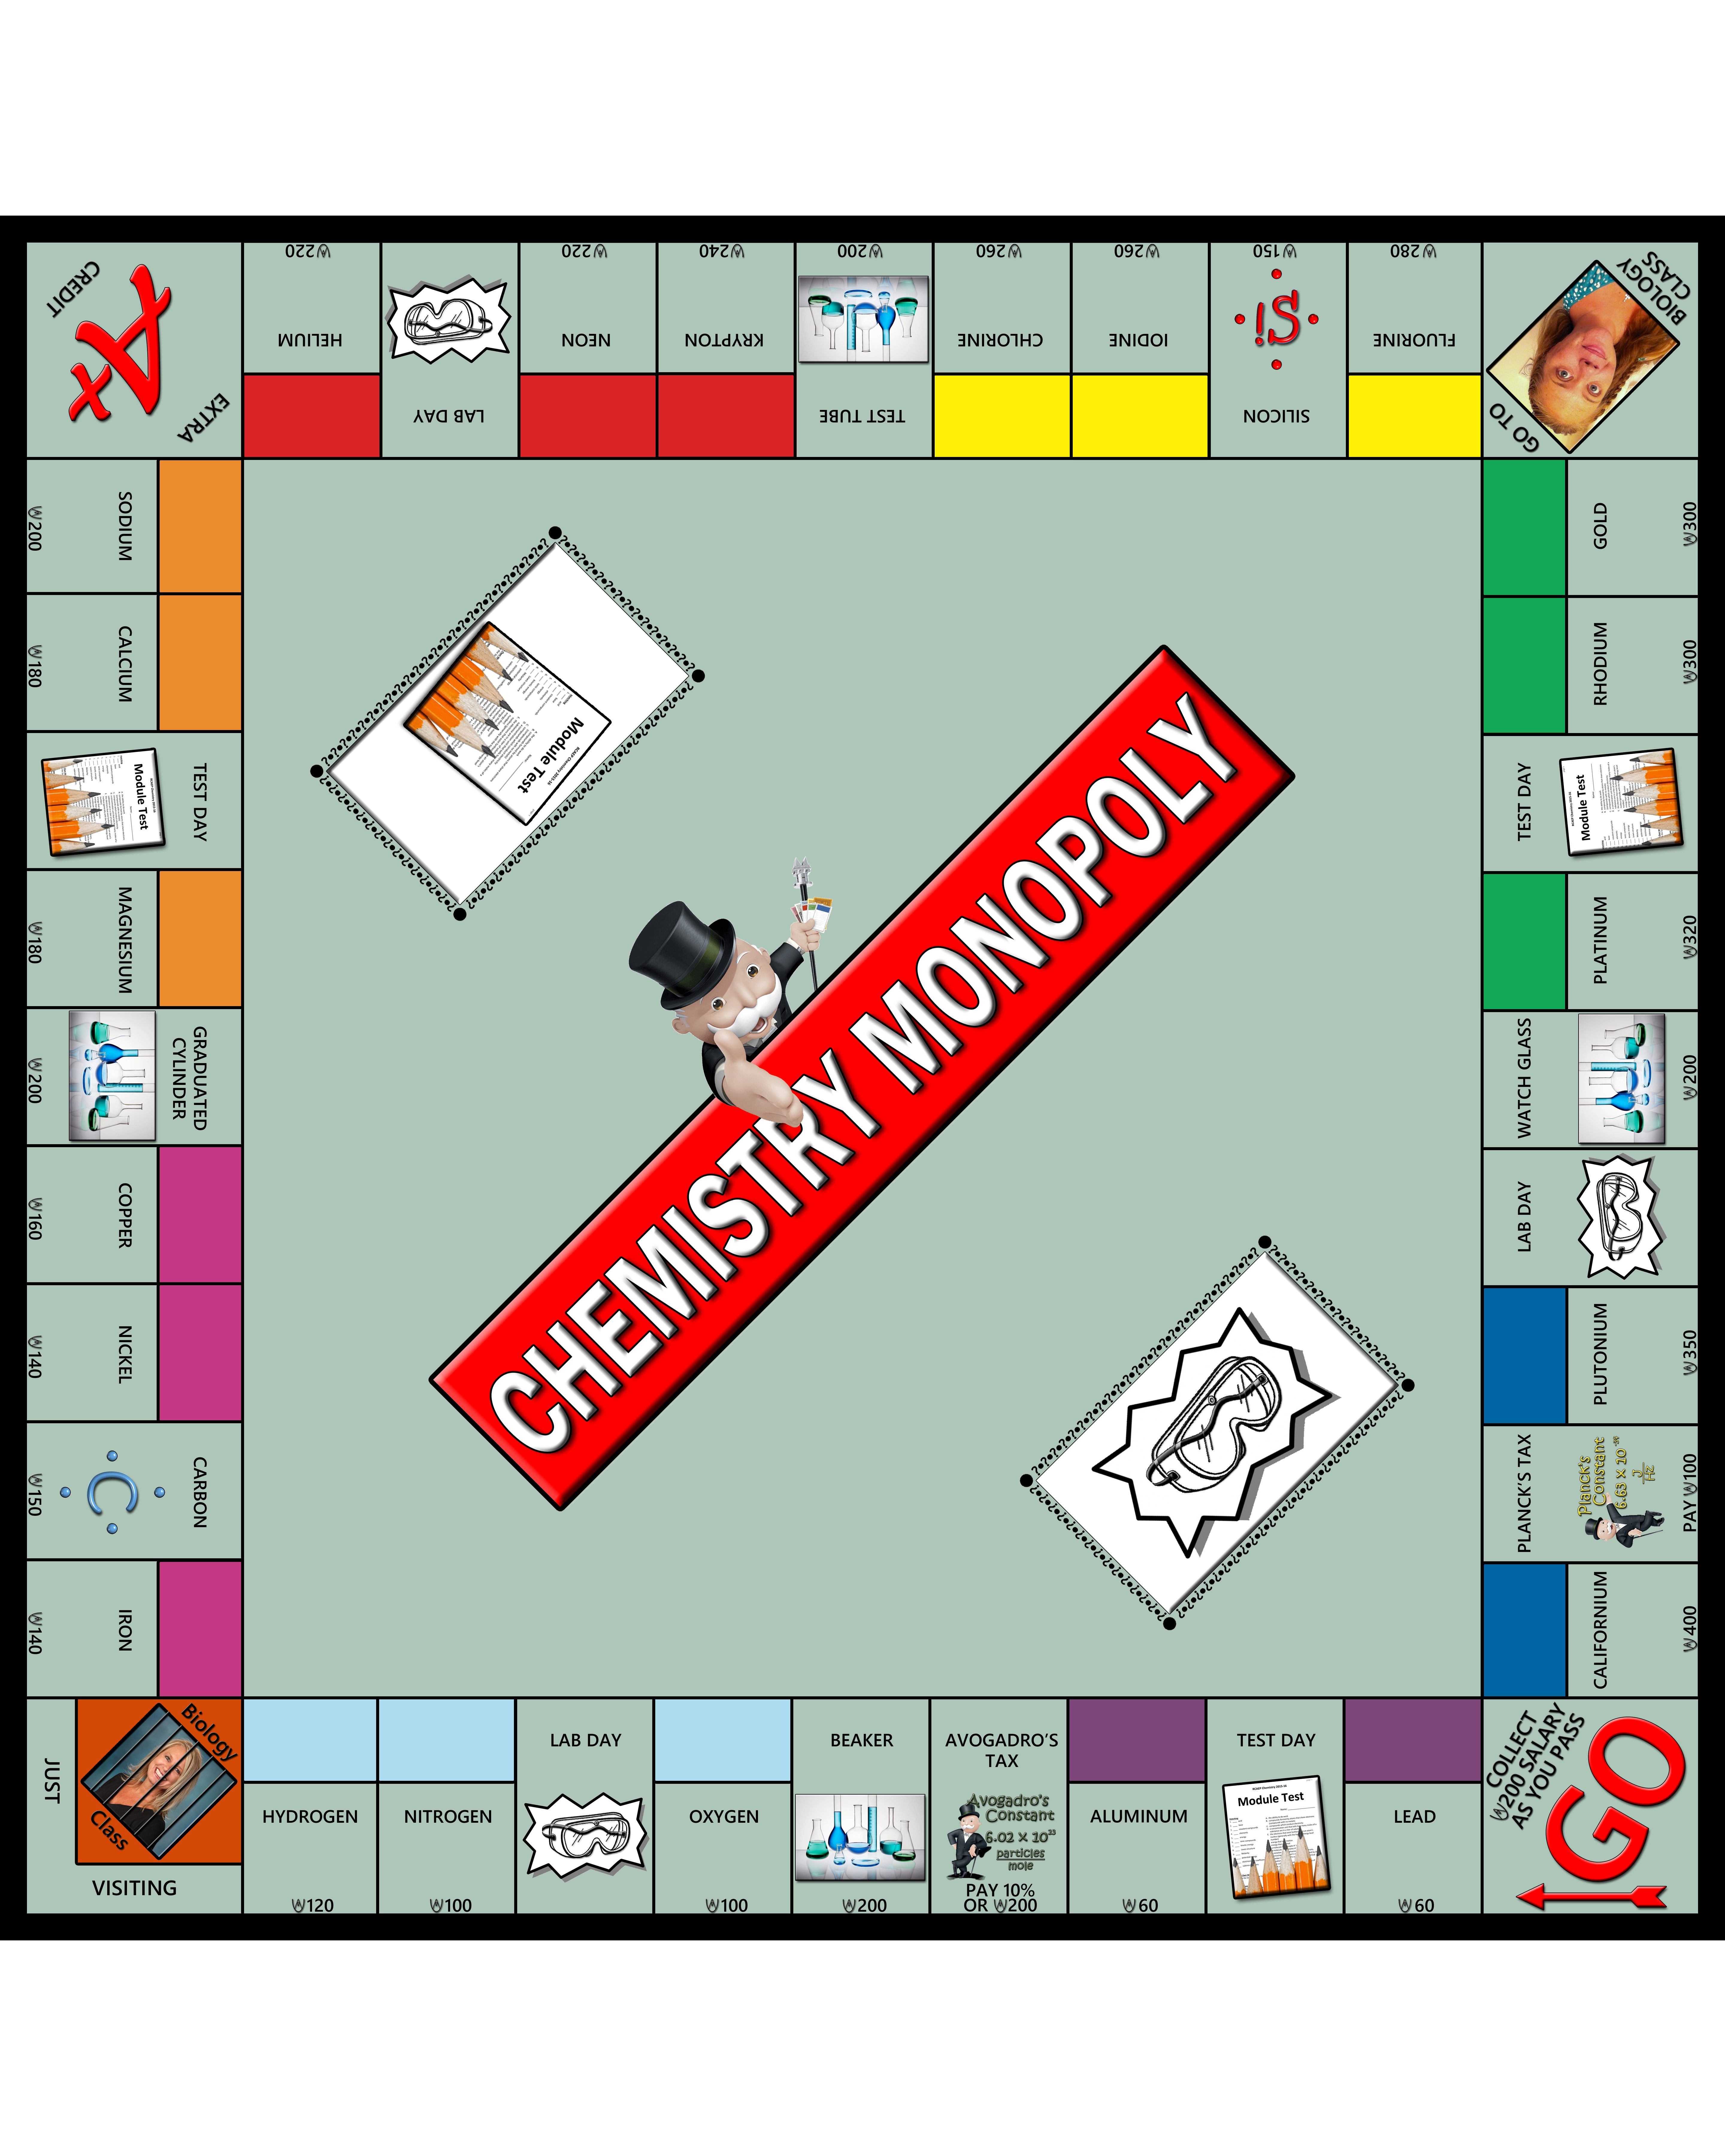 graphic regarding Albertsons Monopoly Game Board Printable called Optimum Design and style Plans Printable Monopoly Board Sport Visuals